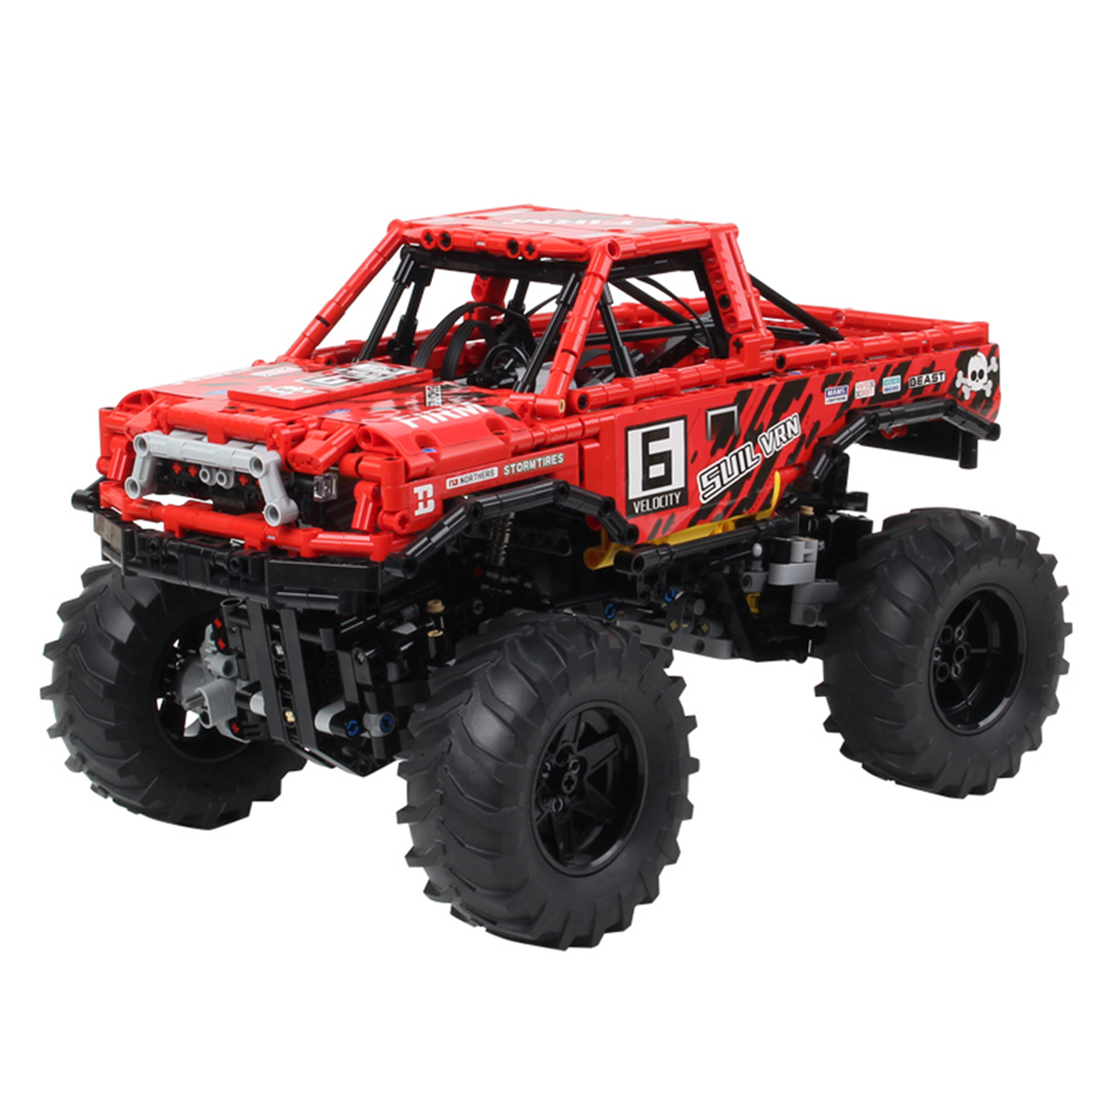 1760Pcs 1:10 Mechanical Off-Road Vehicle MOC Small Particle High Level Construction Building Kit Model Educational Toy For Kids